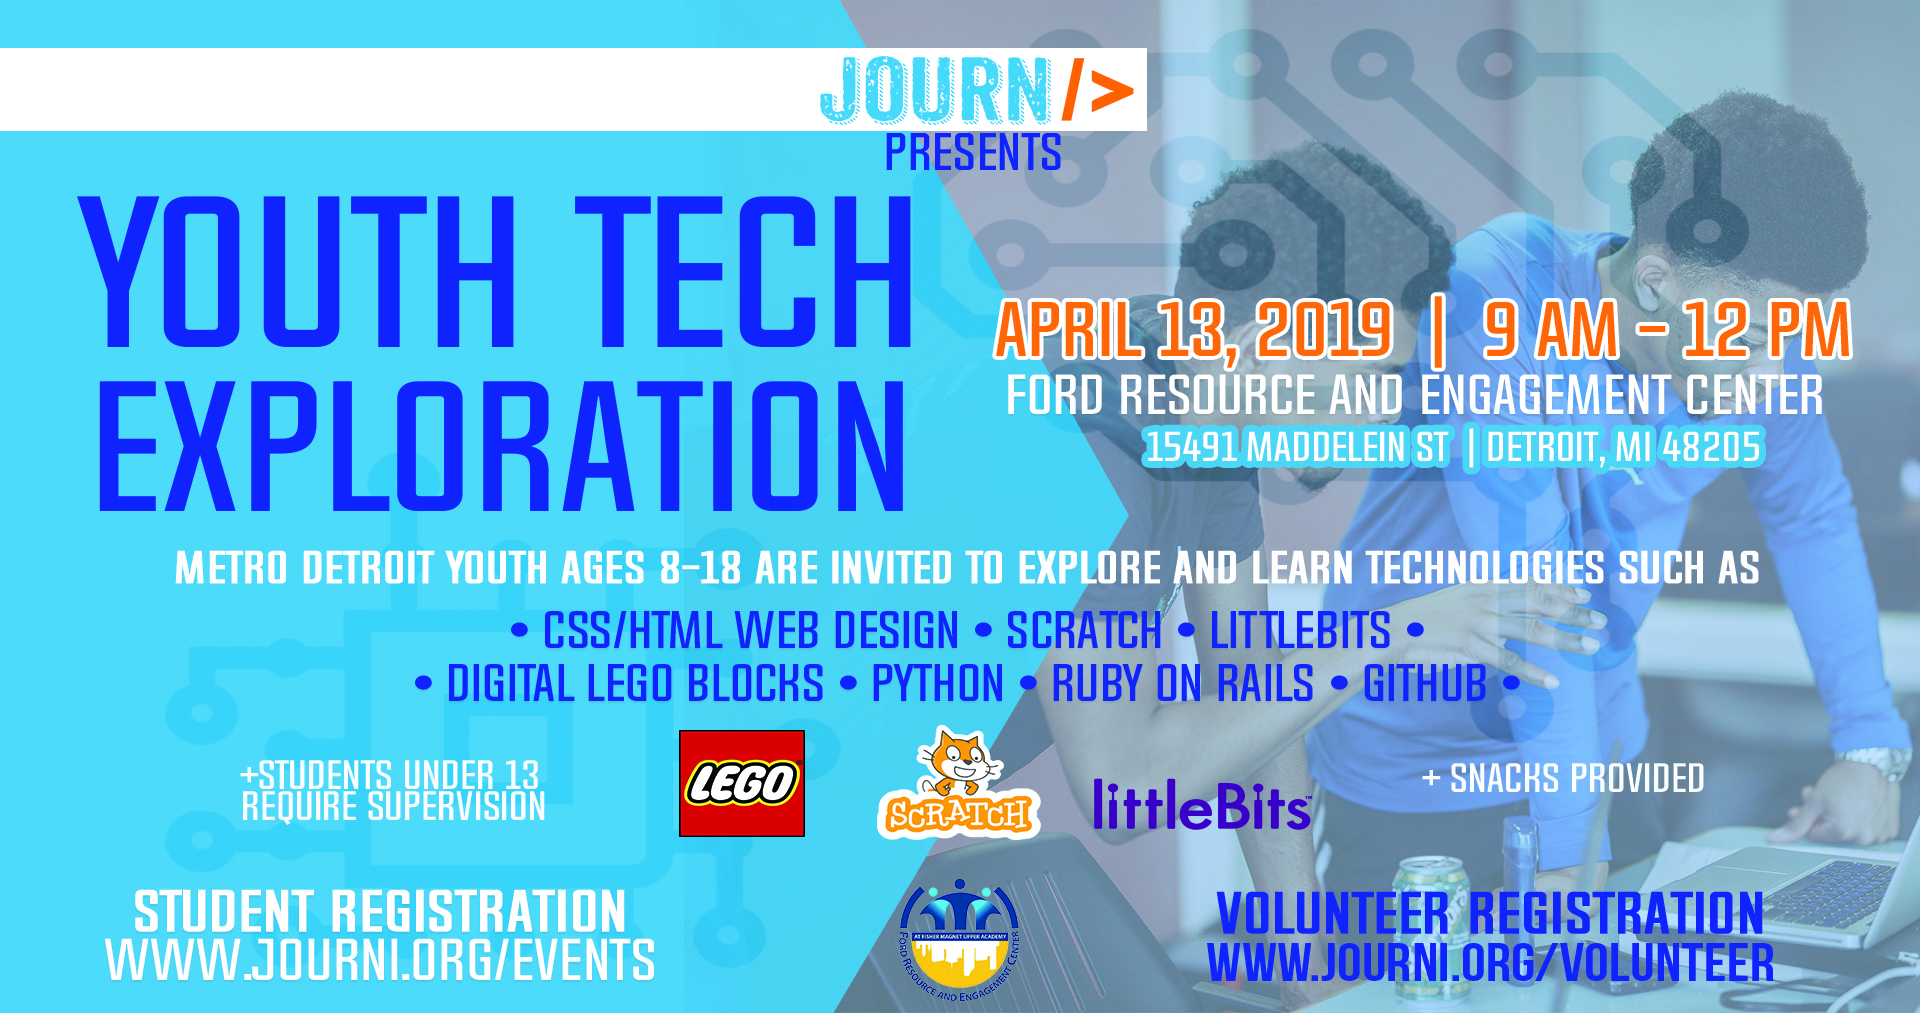 ALL YOUTH 8-17 IN METRO DETROIT ARE INVITED TO COME TO  JOURNI 'S YOUTH TECHNOLOGY EXPLORATION! WE WILL INTRODUCE YOU TO WEB DESIGN, BUILDING BLOCKS WITH  WEDO ,  LITTLE BITS , AND  SCRATCH . FOR MORE ADVANCED ATTENDEES, WE'LL HAVE OTHER AWESOME THINGS TO DO (MAYBE PYTHON, RUBY ON RAILS, OR GITHUB).  YOU'LL HAVE AN OPPORTUNITY TO EXPLORE TECHNOLOGY IN A FUN COLLABORATIVE ENVIRONMENT. SO REGISTER TODAY, SPOTS ARE LIMITED!